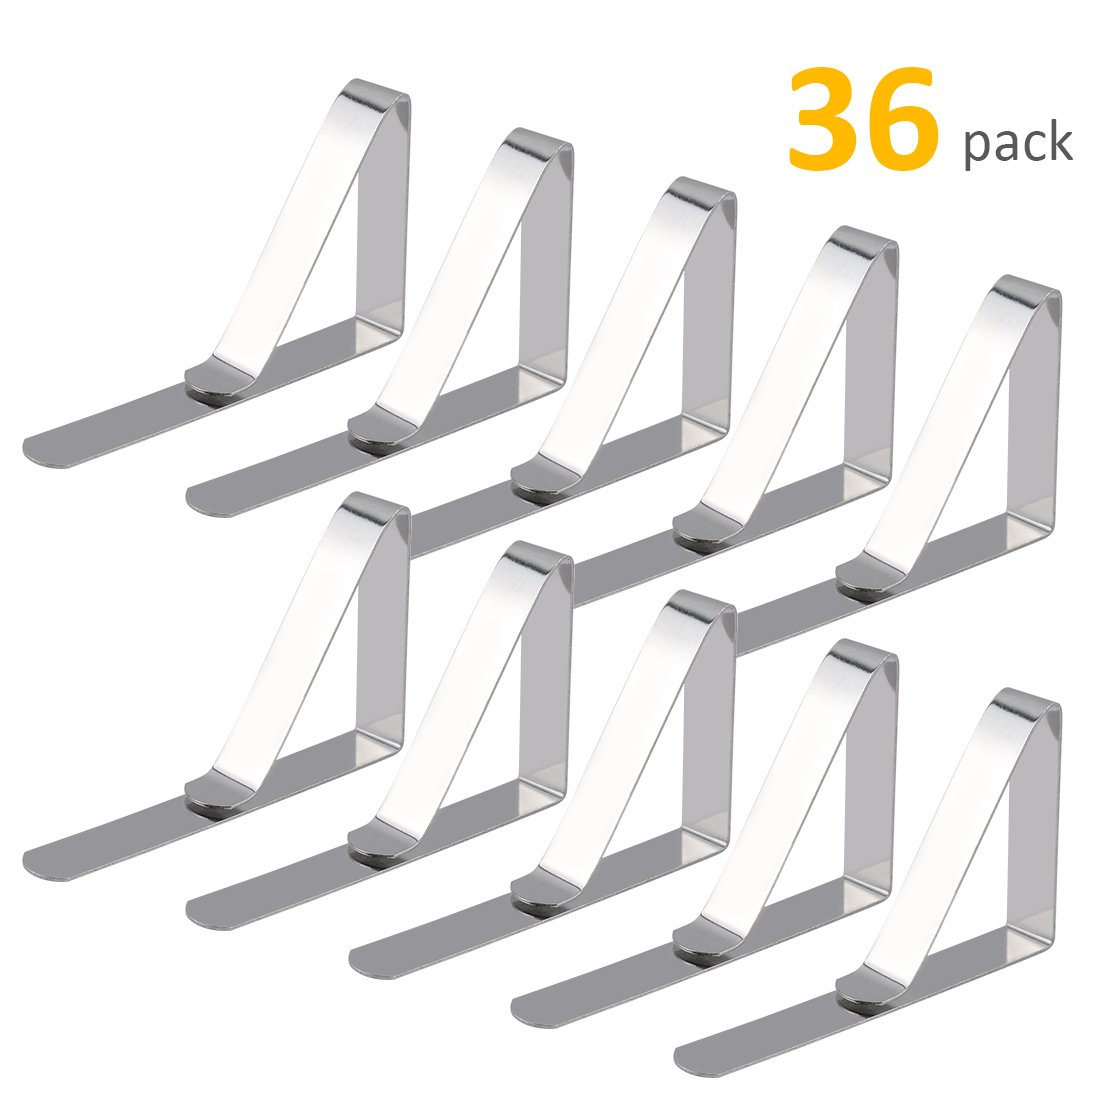 GROWNEER 36-Pack Tablecloth Clips, Stainless Steel Table Cover Clamps, Outdoor Picnic Table Cloth Holders